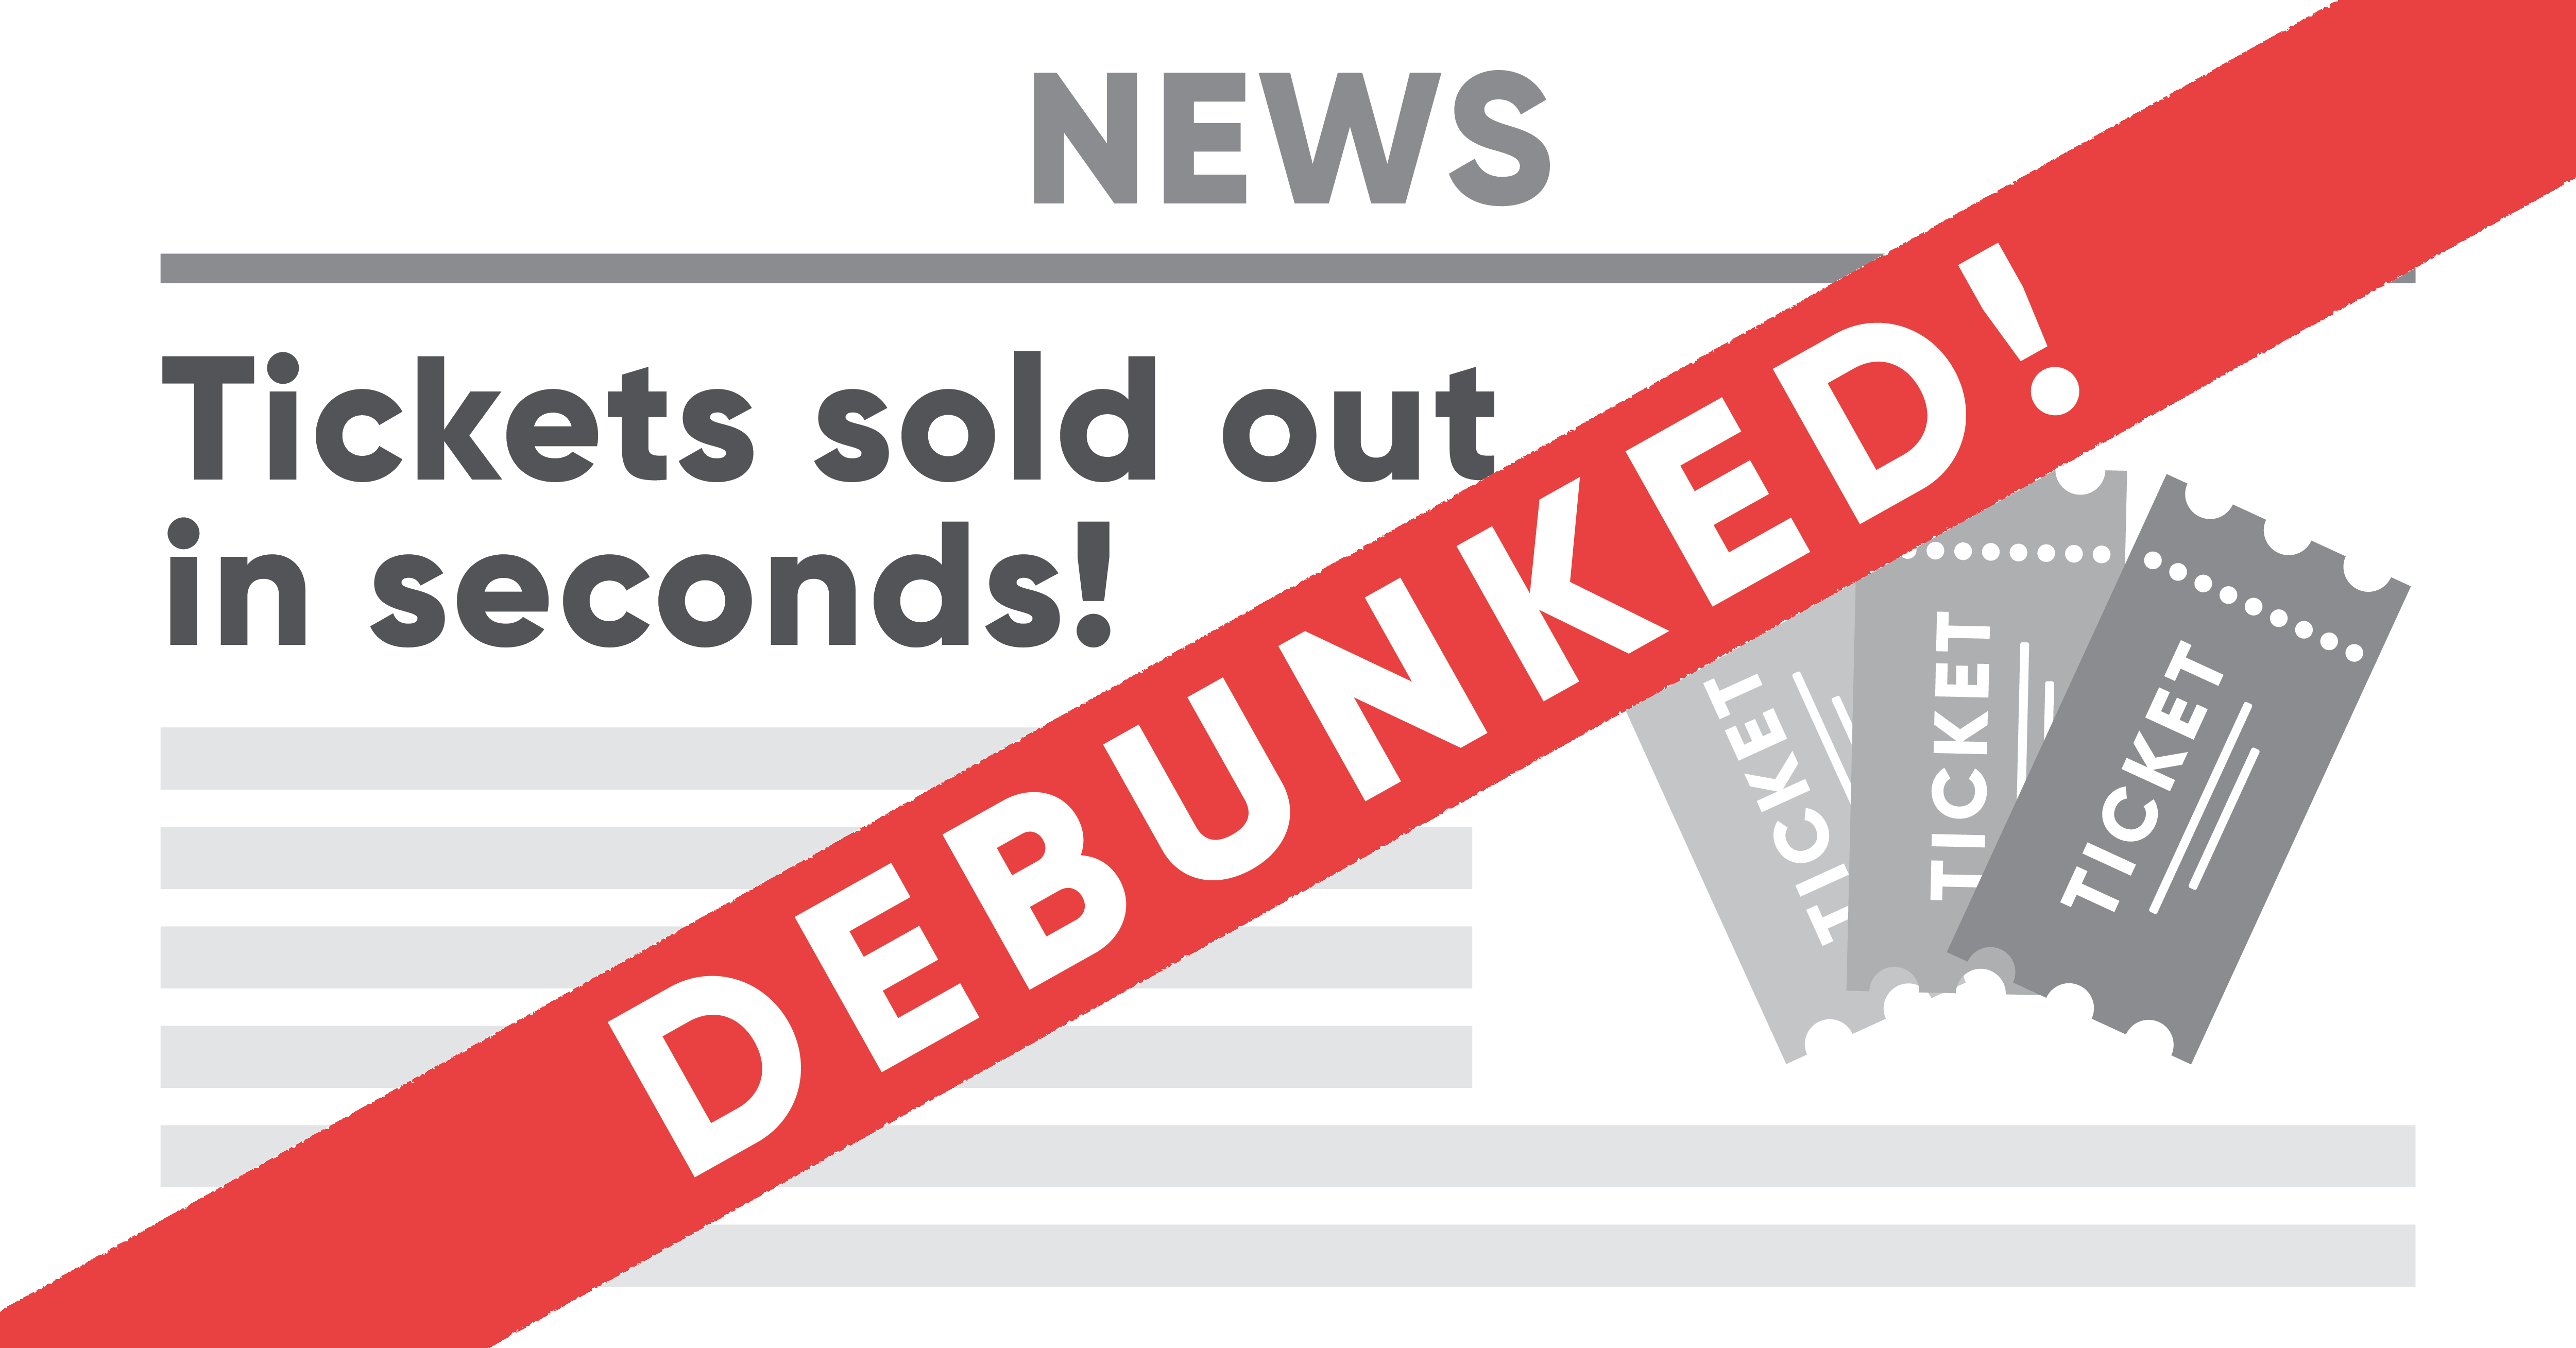 Tickets sold out in seconds headline myth debunked